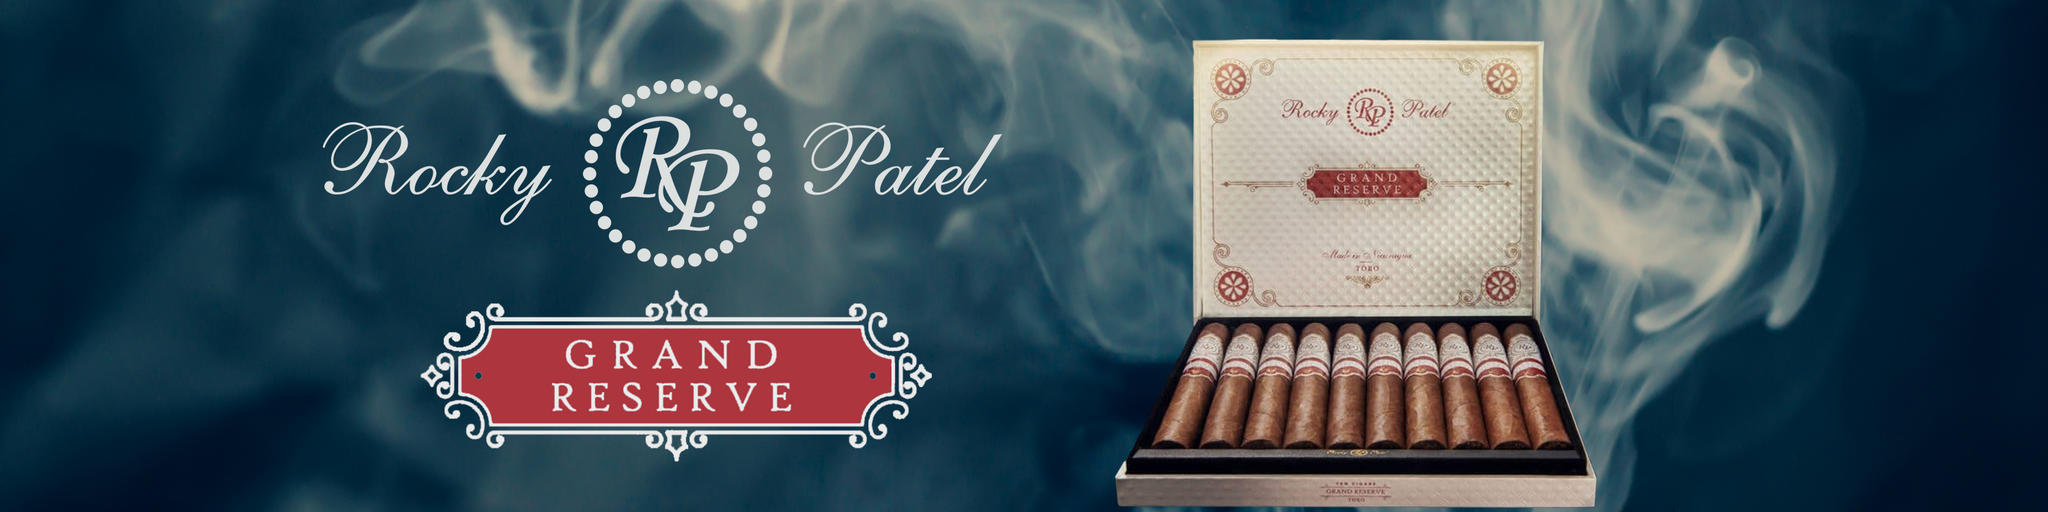 Burners Cigar Co. banner 2